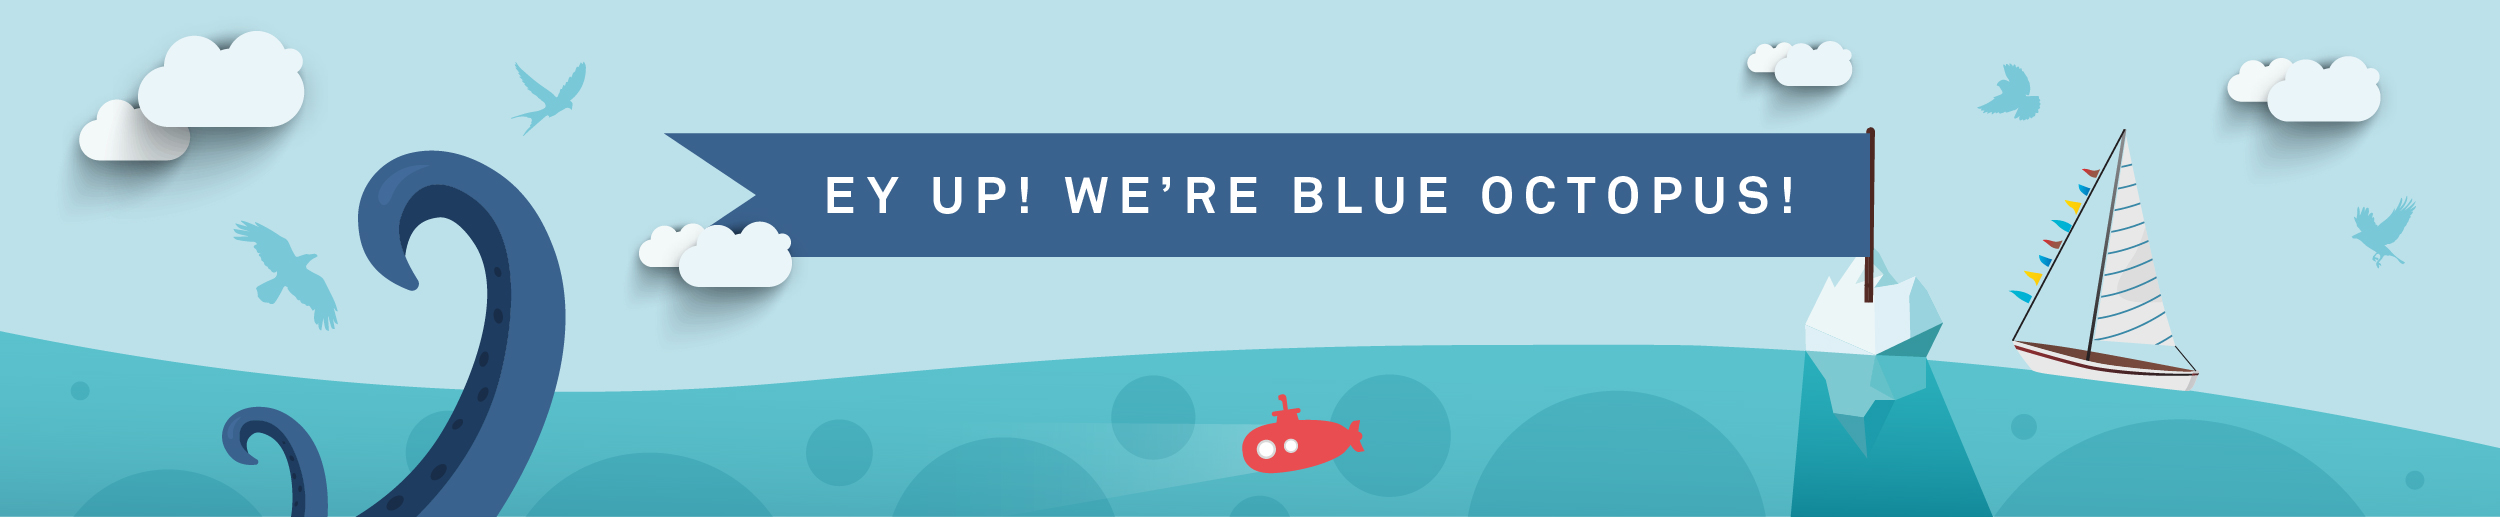 "<p>Finding the right people for your business can feel like swimming against the tide – but it doesn't have to. At Blue Octopus Recruitment, we're here to make things easy. We're a friendly bunch of recruitment professionals from sunny Yorkshire, who've developed an award-winning online recruitment solution that puts employers firmly in control (without all the hassle!).</p> <p>We advertise a wide range of roles across a wide range of industries, so it might just be that we have something perfect for you! Helping candidates through the recruitment process is at the heart of what we do, driven by our top-notch service team. When you apply with Blue Octopus, we keep you informed every step of the way and have a bunch of materials to help you through the interview process too.</p> <p>To check out our current vacancies, head over to <a href=""https://www.blueoctopus.co.uk/vacancies"">https://www.blueoctopus.co.uk/vacancies</a>. </p>"